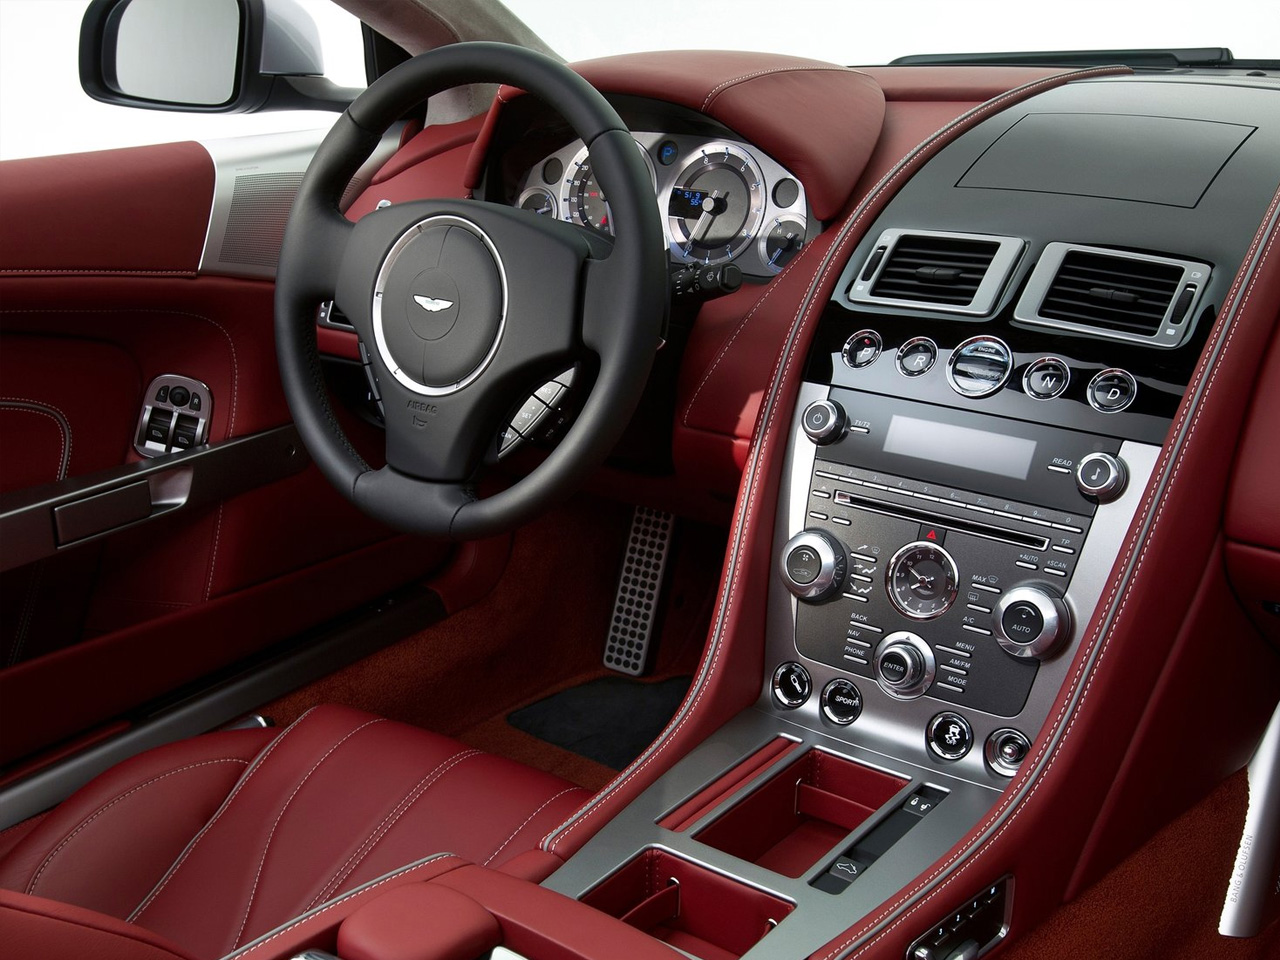 My jaguar experience 21 balance and perspective for Aston martin db9 interior